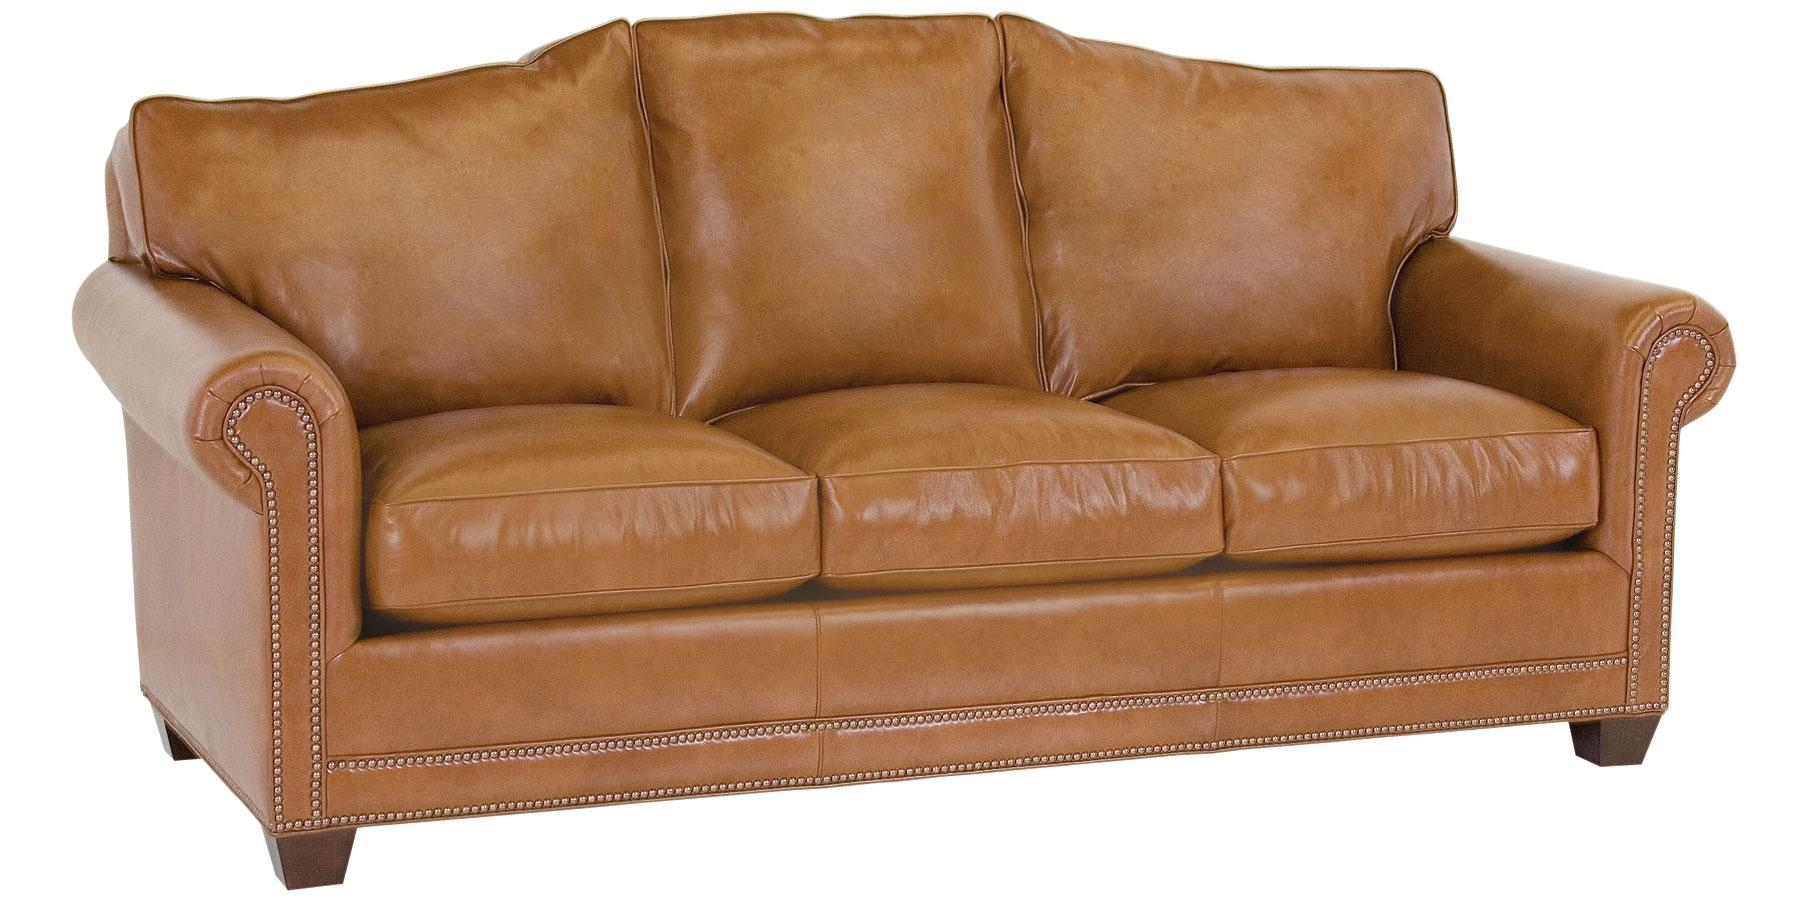 Leather Furniture | Club Furniture Within Brown Leather Sofas With Nailhead Trim (Image 11 of 20)